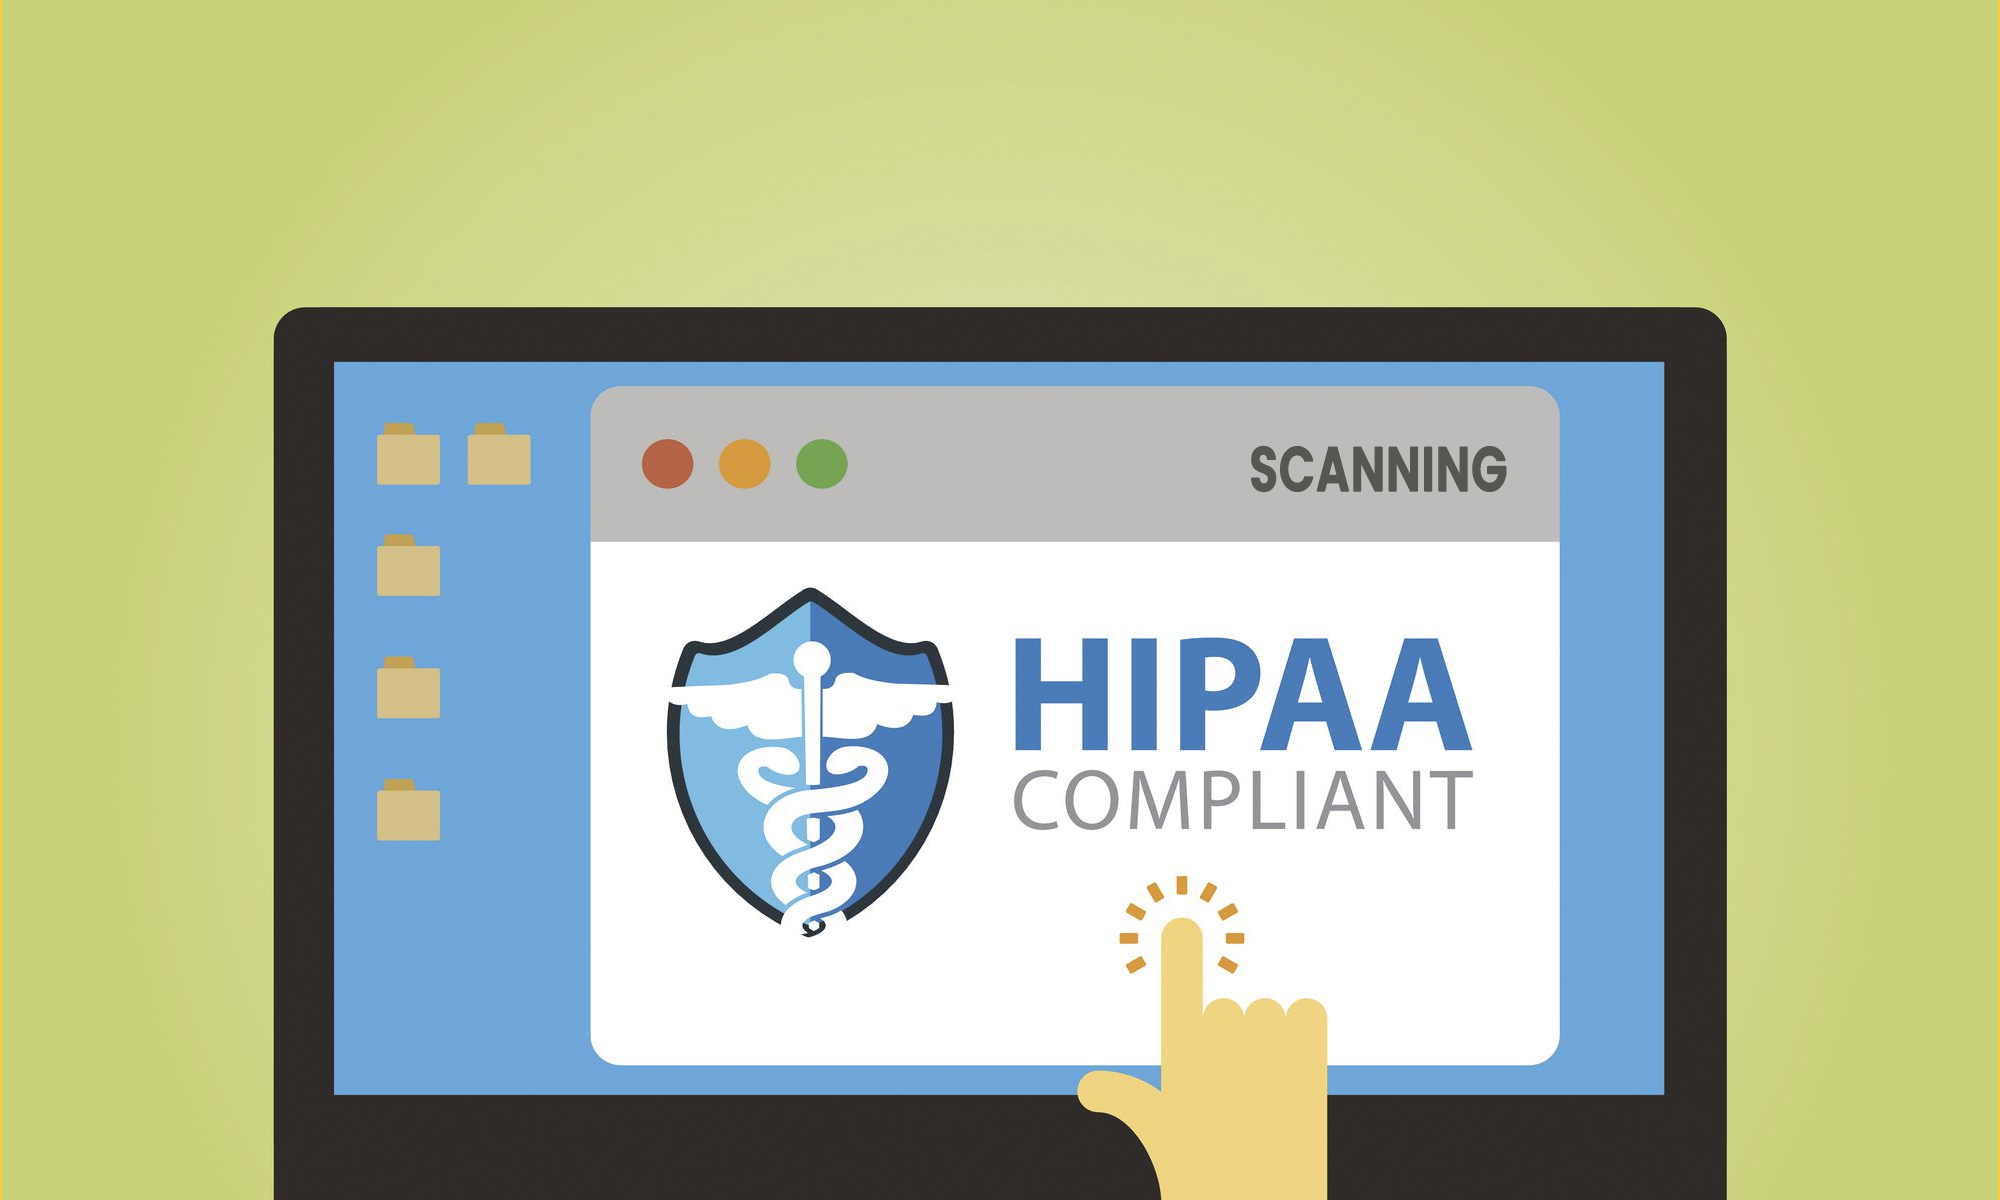 HIPAA compliant scanning bluetail